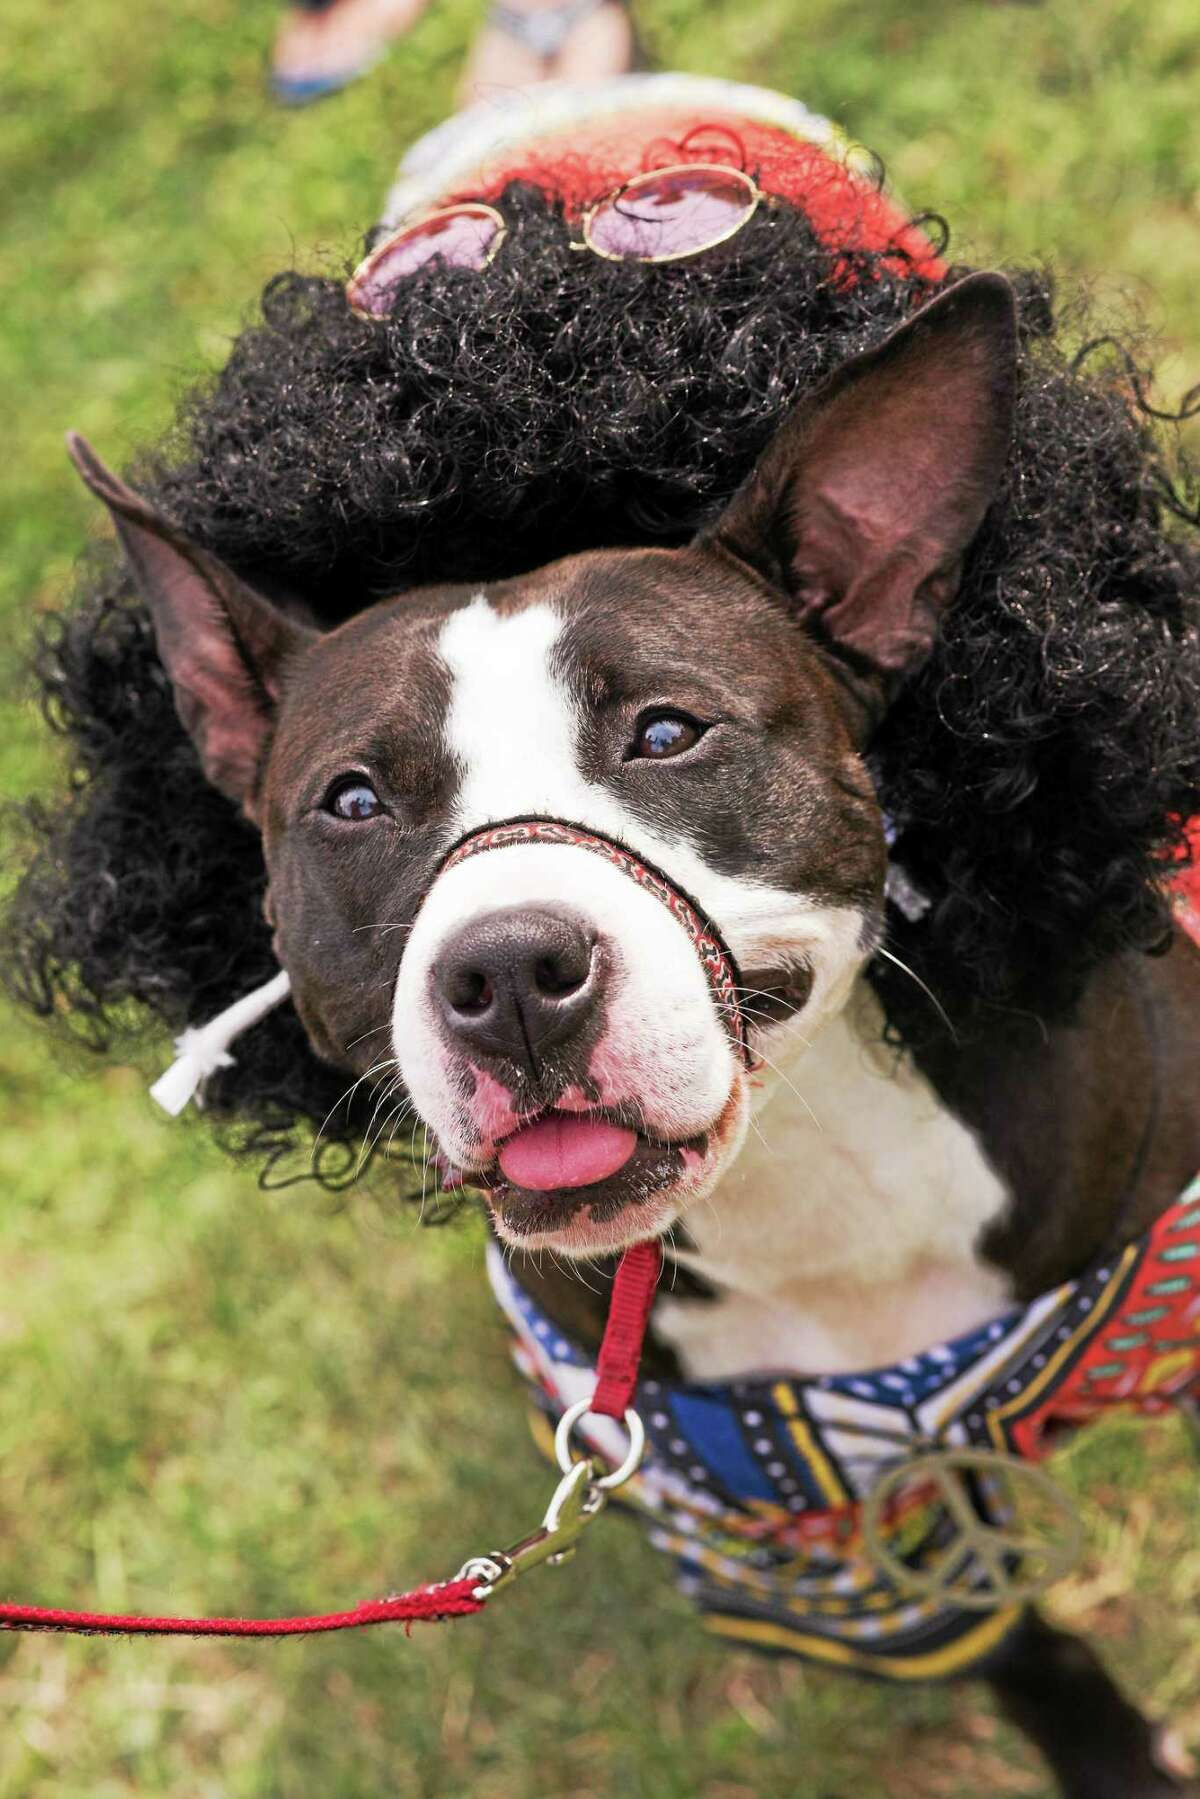 Dogs in costume are just one of the festivities at Woofstock on the Branford Green.